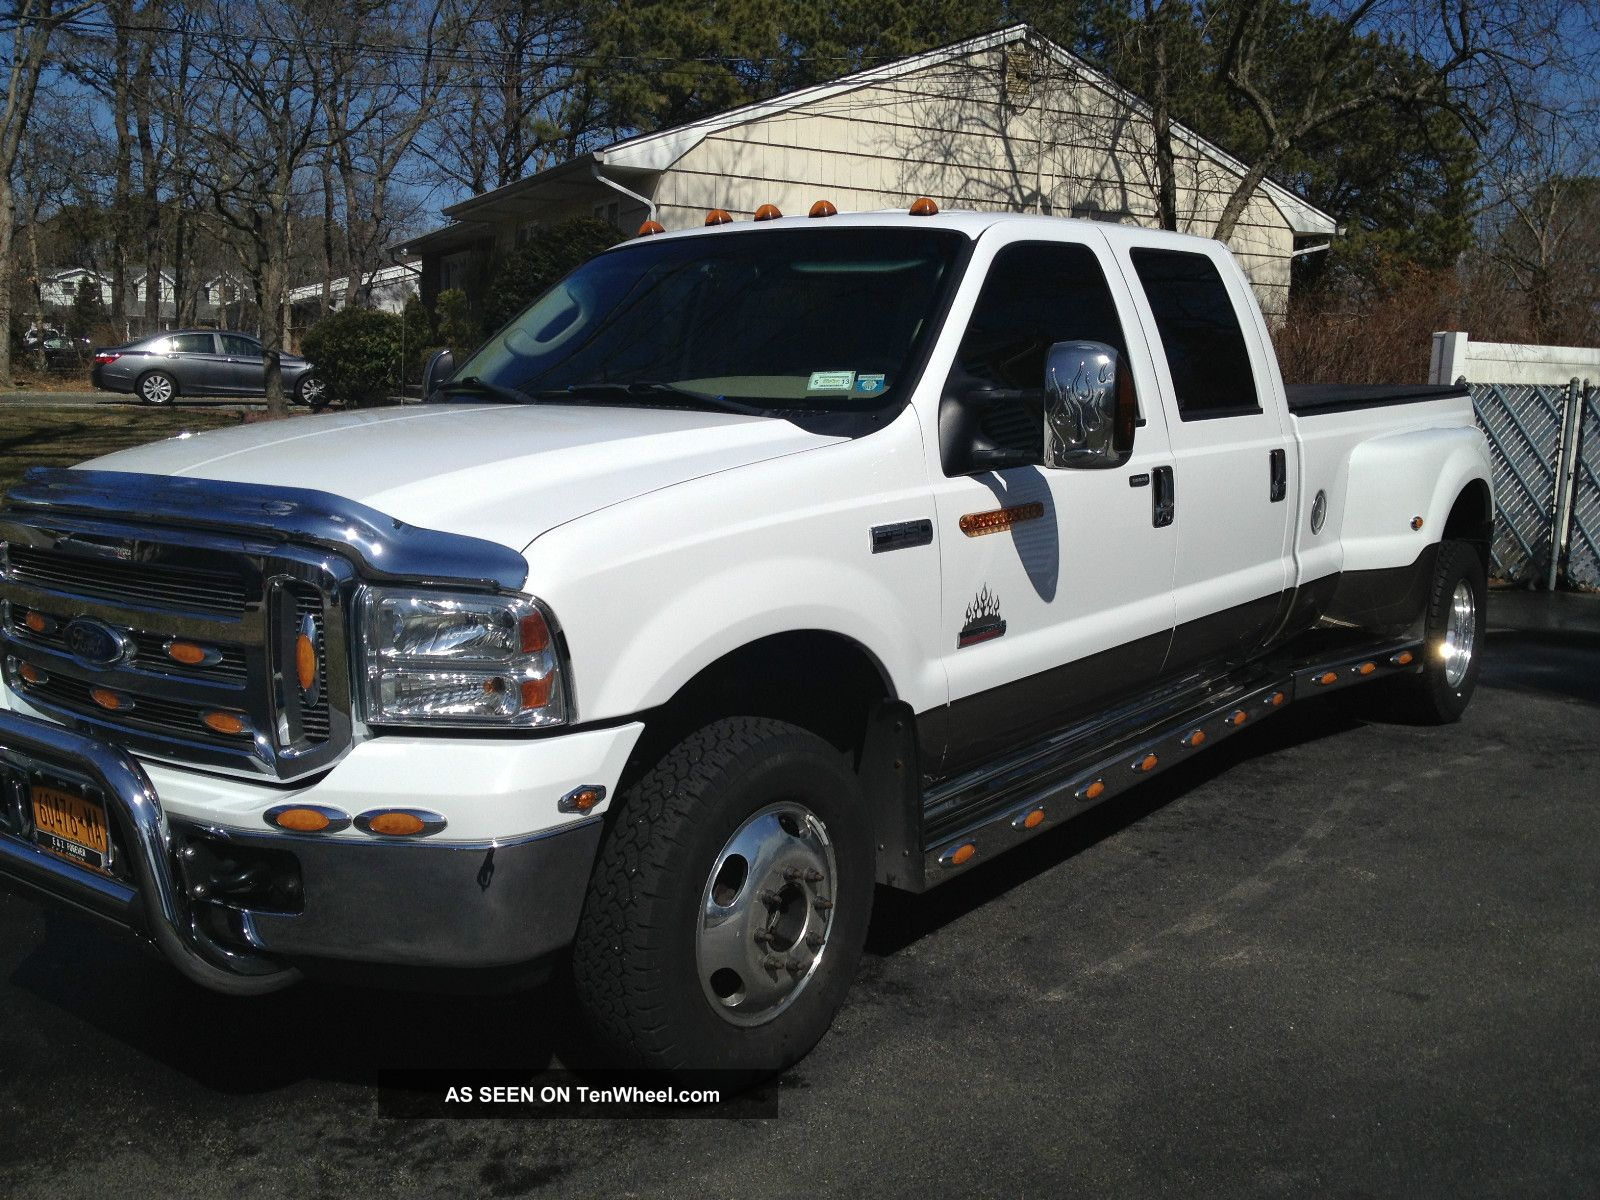 2005 ford f350 lariat superduty dually 4x4. Black Bedroom Furniture Sets. Home Design Ideas